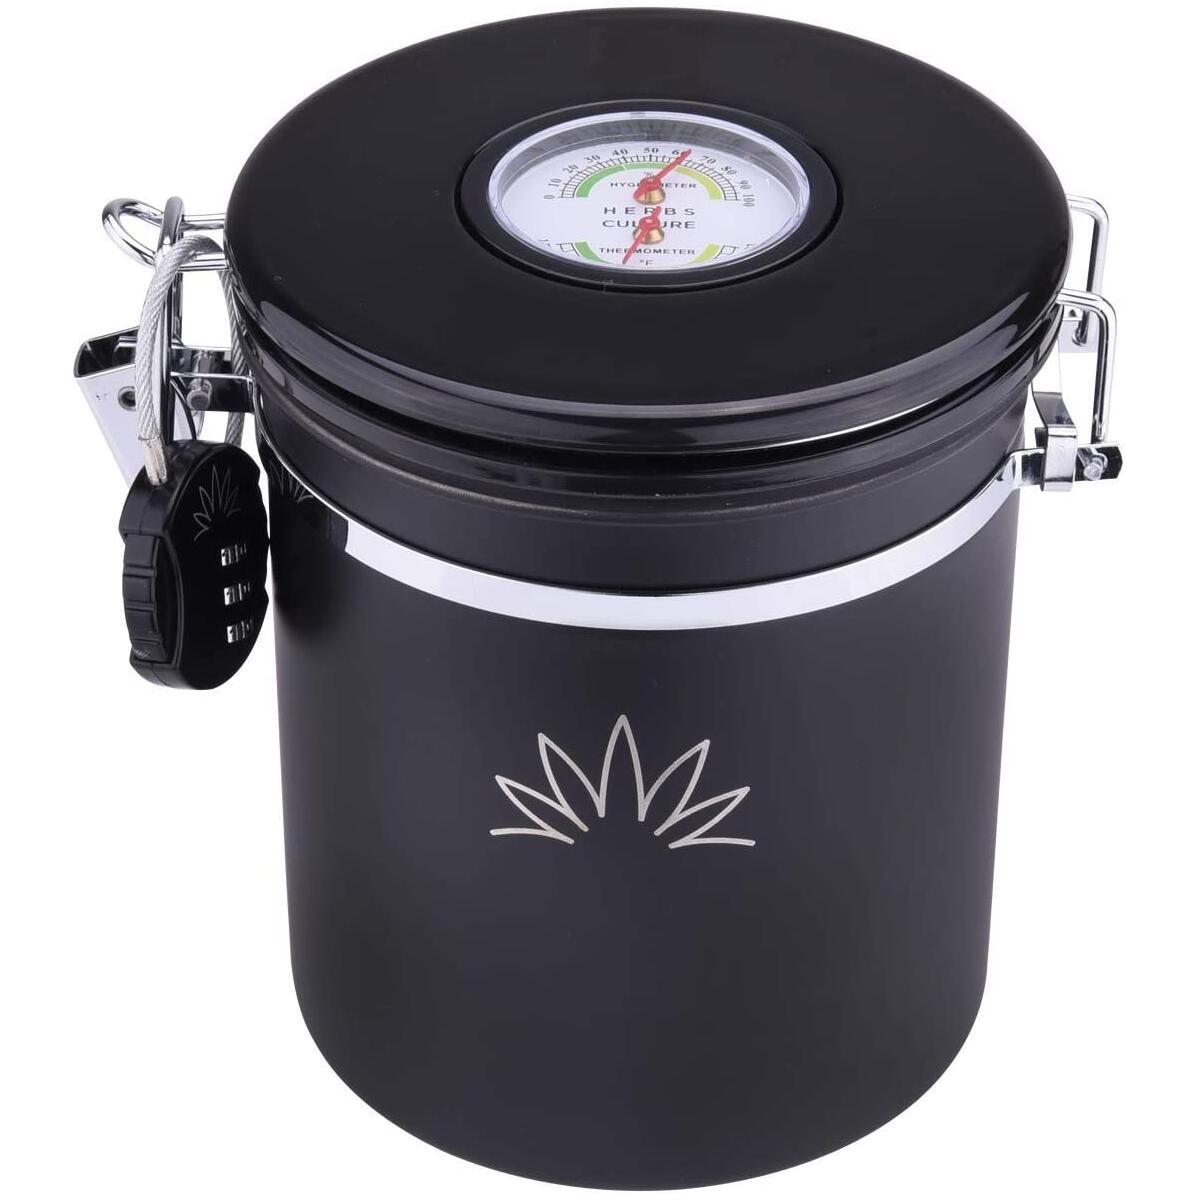 CRYPT - Cannister for storage with built in Hygrometer – Airtight Jar with Humidity Pack & Lock -Smell & Water Proof Keeps Herbs Fresh with RH STAYFRESH HUMIDITY PACK INCLUDED (1.5L)